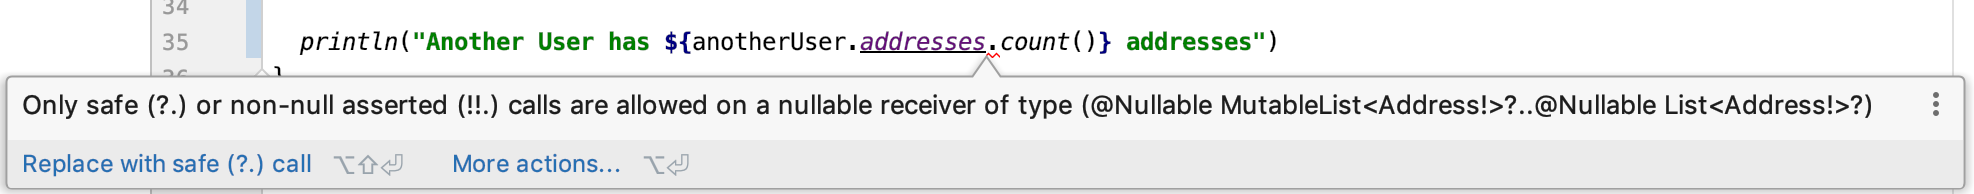 Only safe (?.) or non-null asserted (!!.) calls are allowed on a nullable receiver